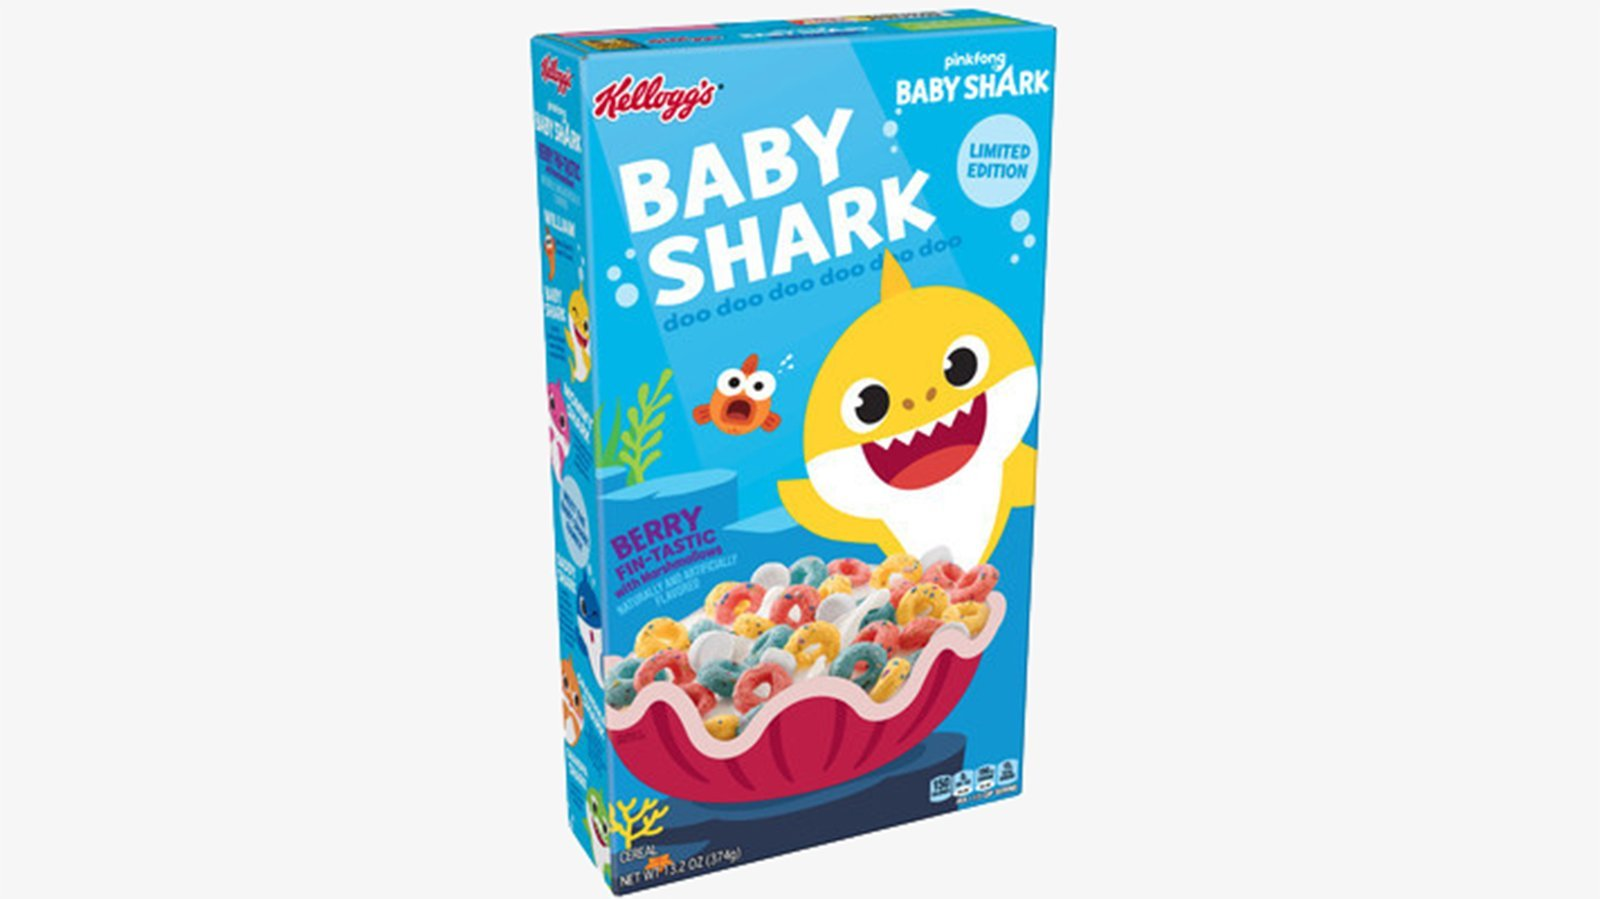 """""""Baby Shark"""" will soon be swimming in bowls of milk as kids sing along to the popular song's """"doo doo doo doo doo doo."""" (Credit: Kellogg's via CNN)"""